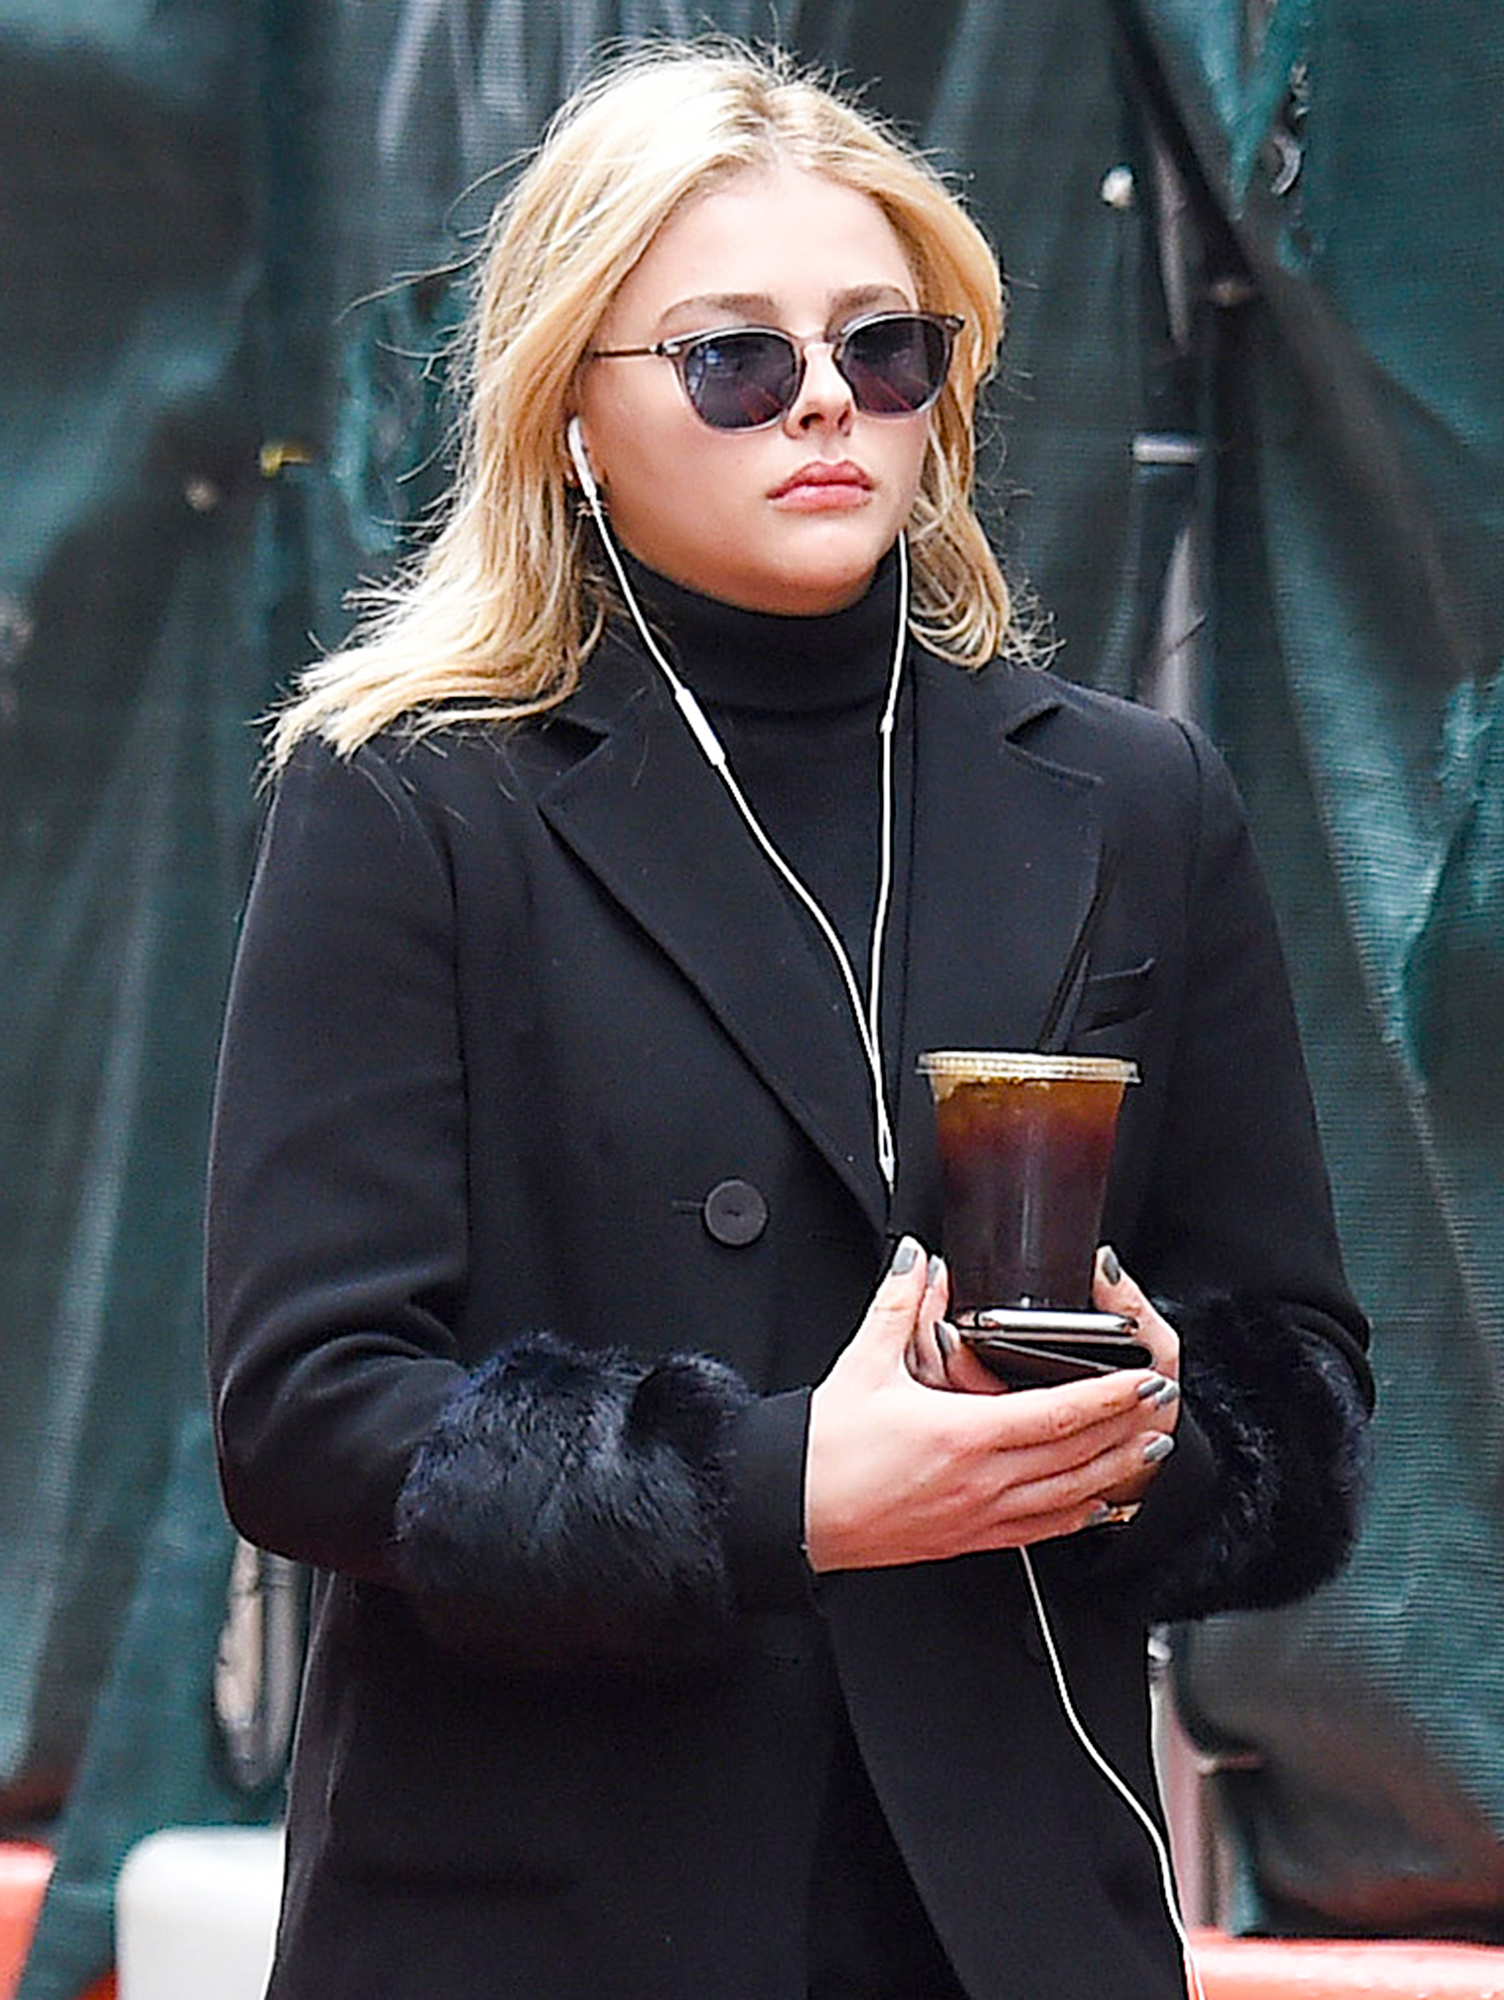 Chloe Moretz Looks Downcast as She Steps Out Solo in New York City